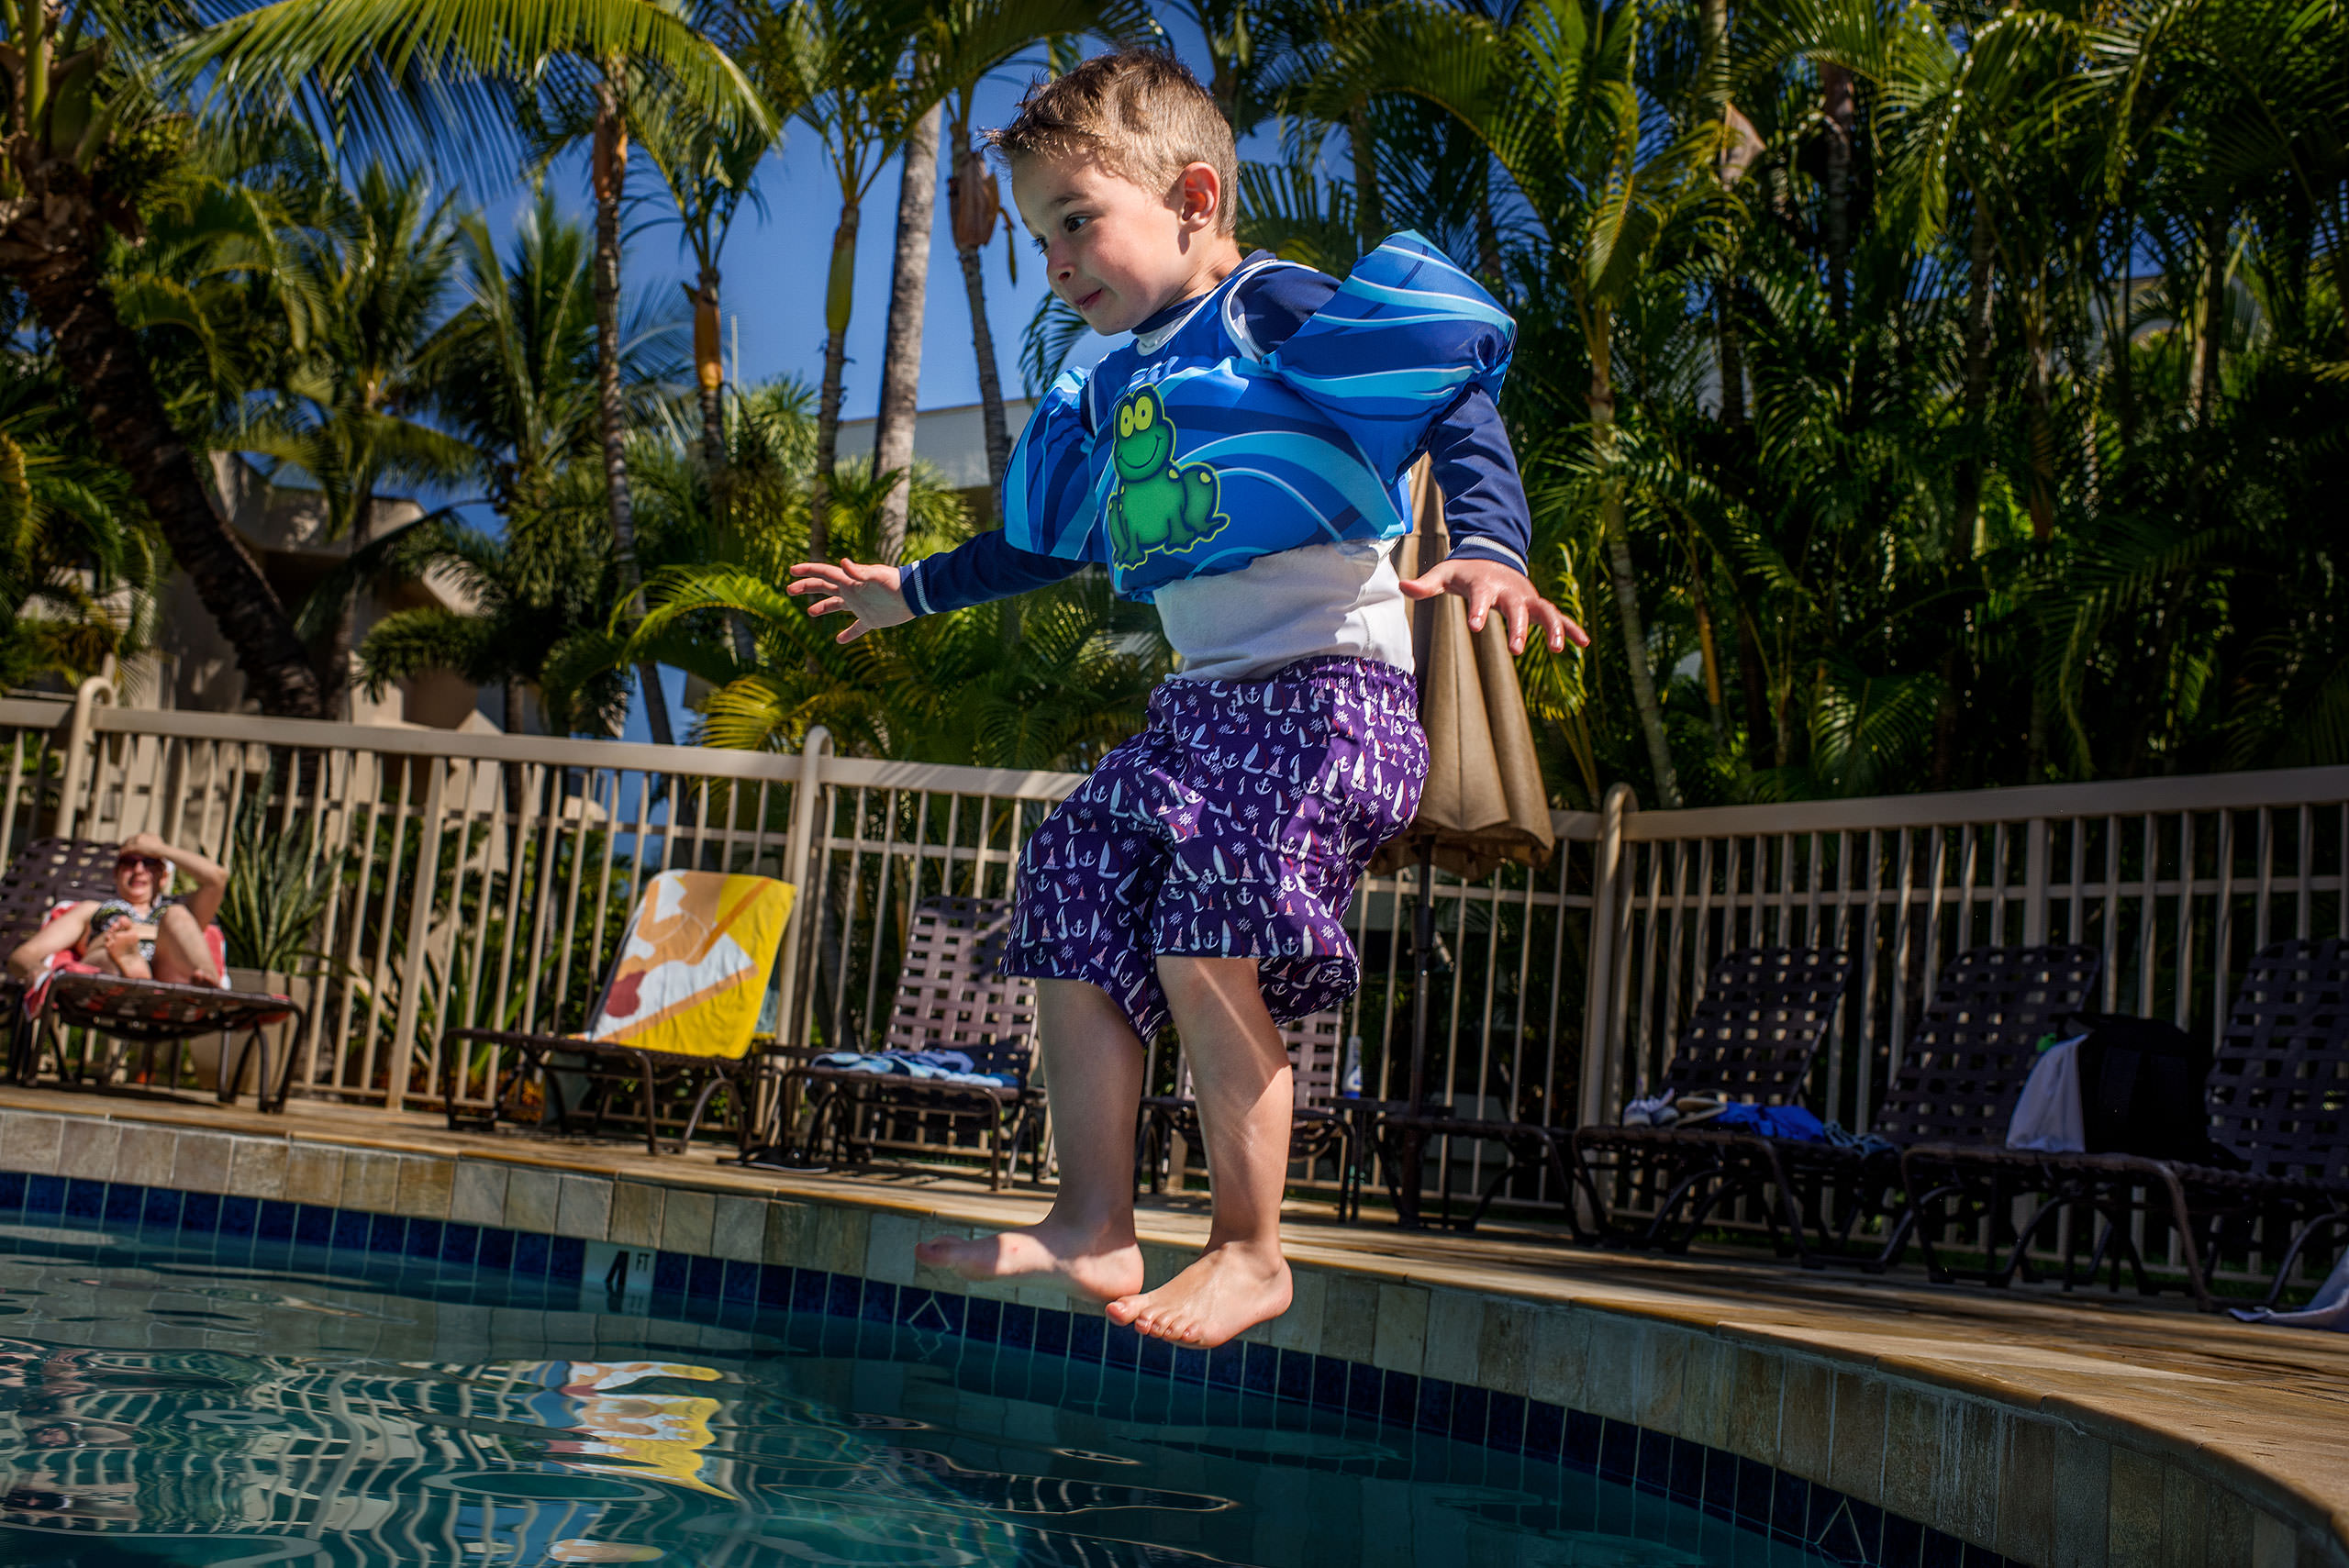 a young boy jumping into a pool by destination family photographers sean leblanc